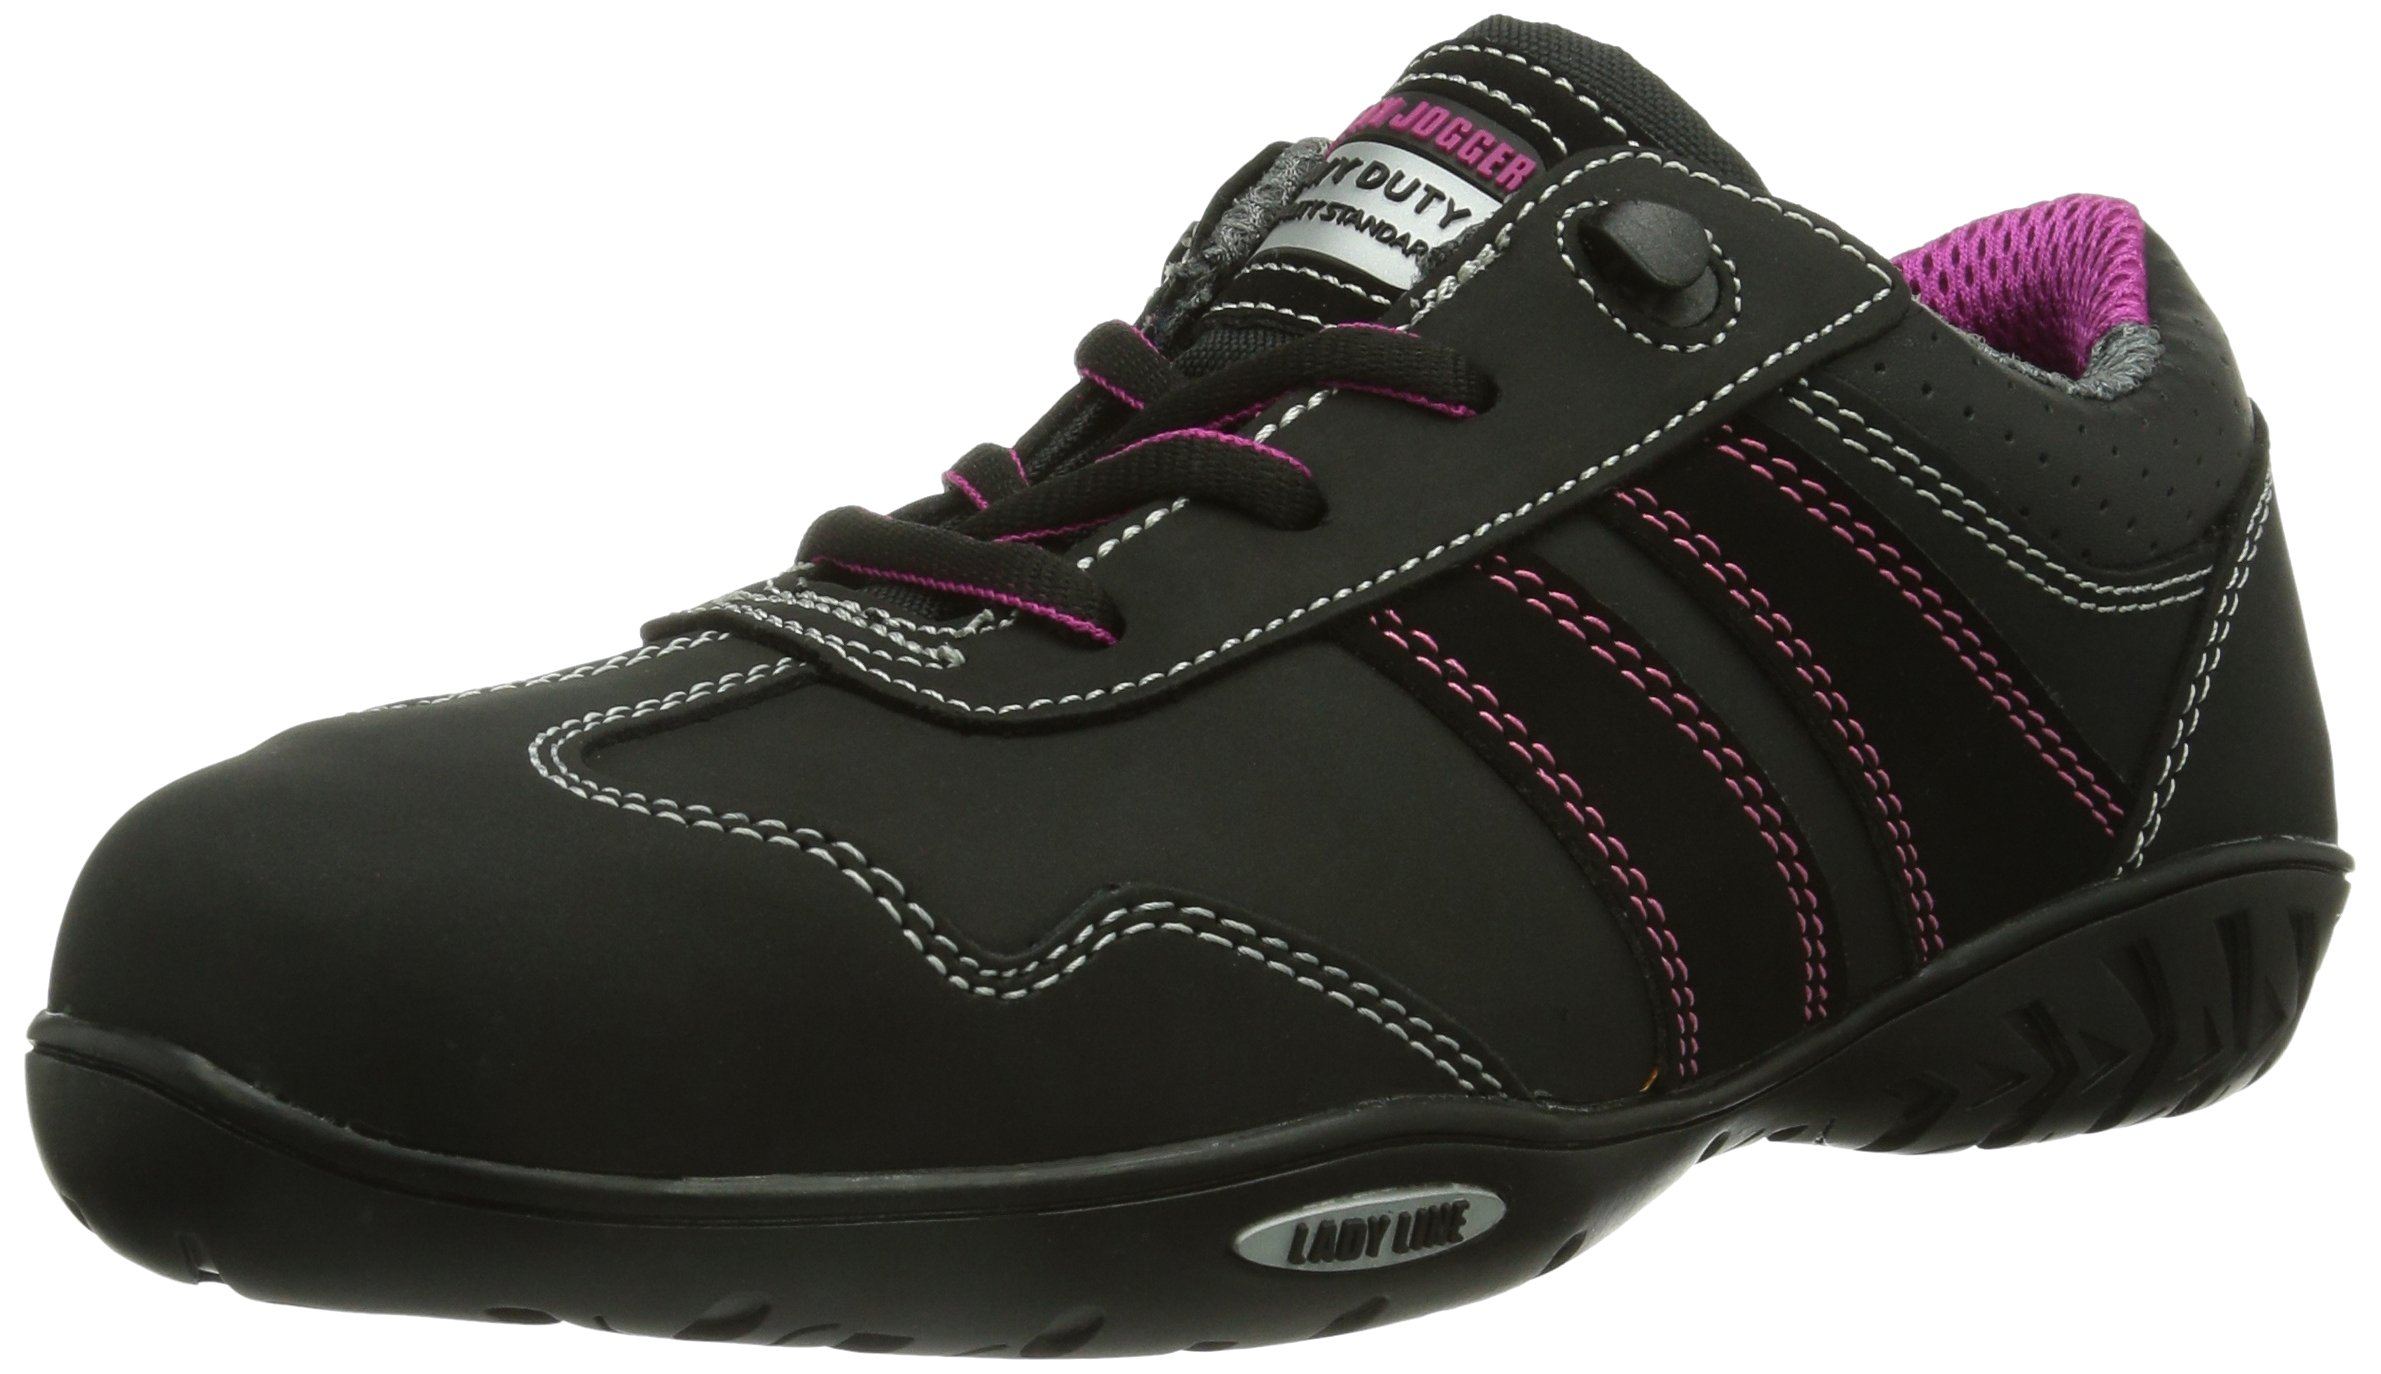 Safety Jogger 'CERES S3' Women's Occupational Steel Toe, EH, SD Safety Shoes (Black/Pink) (5 US)